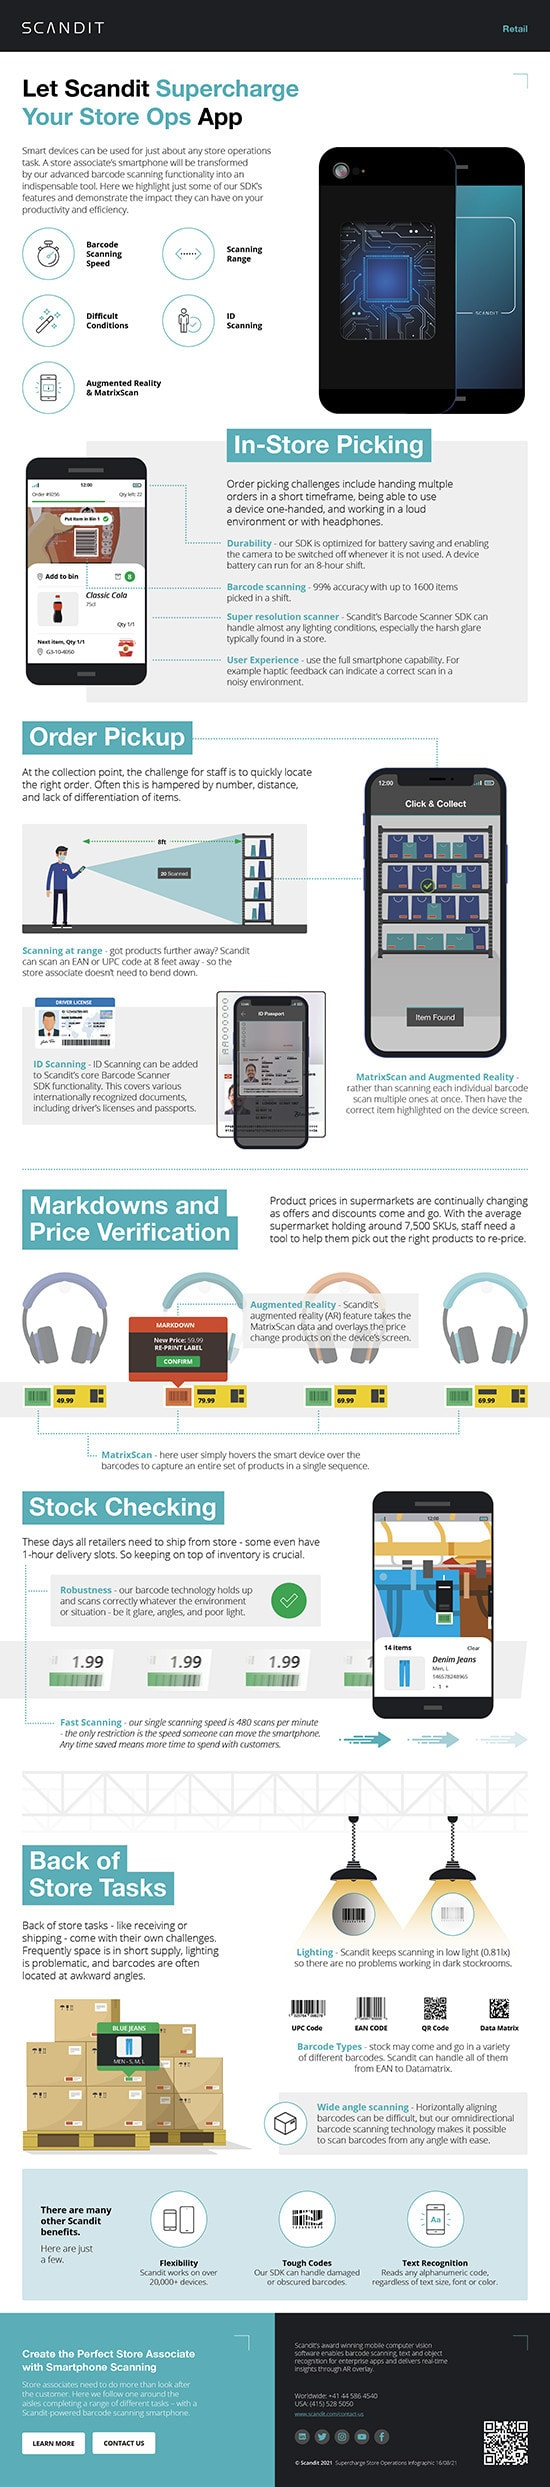 Let Scandit Supercharge Your Store Ops App [Infographic]